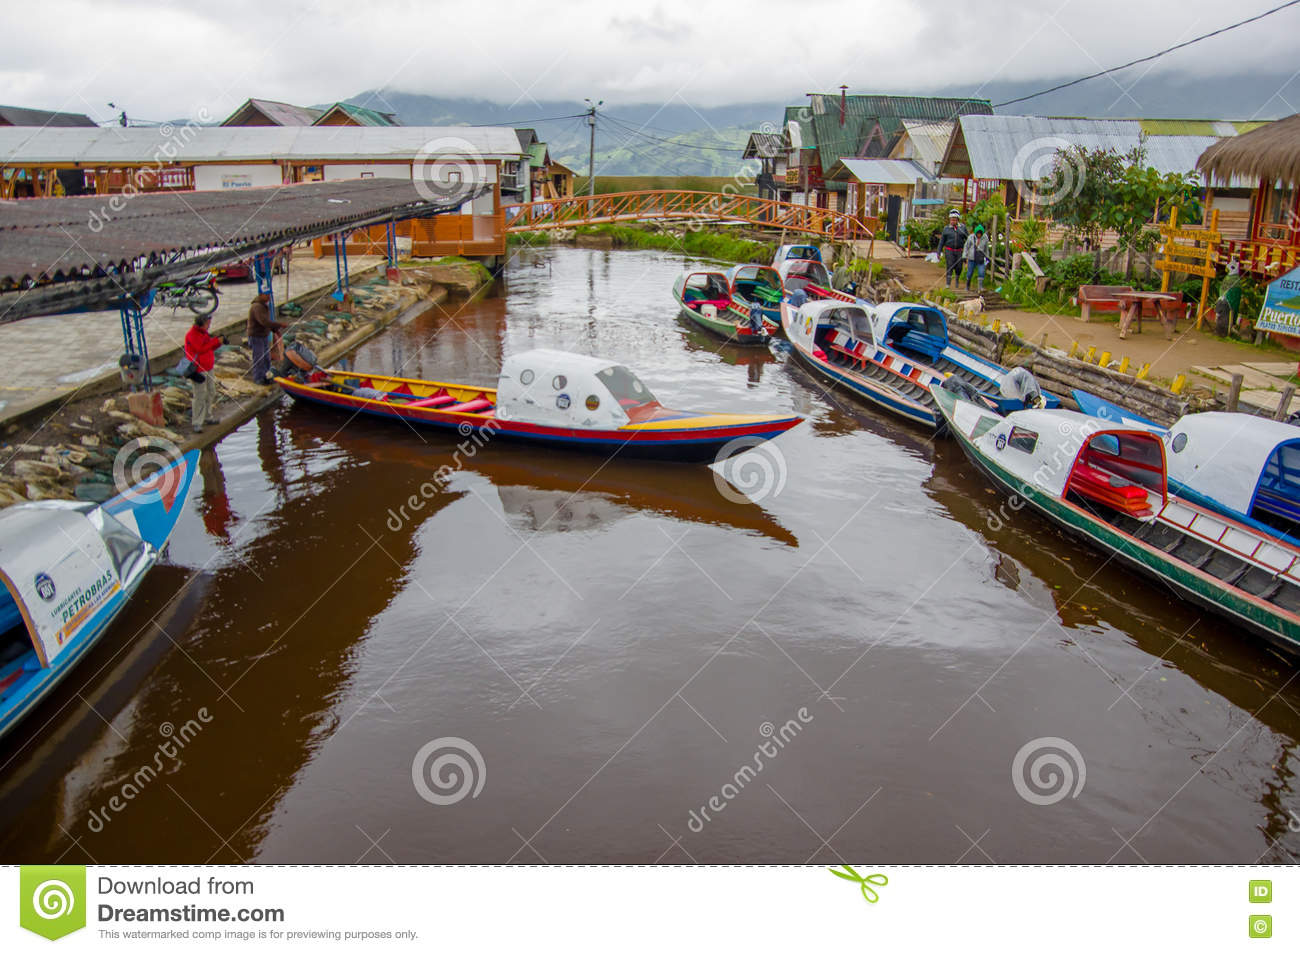 PASTO, COLOMBIA - JULY 3, 2016: some boats parked in the port of a small location in la cocha lake